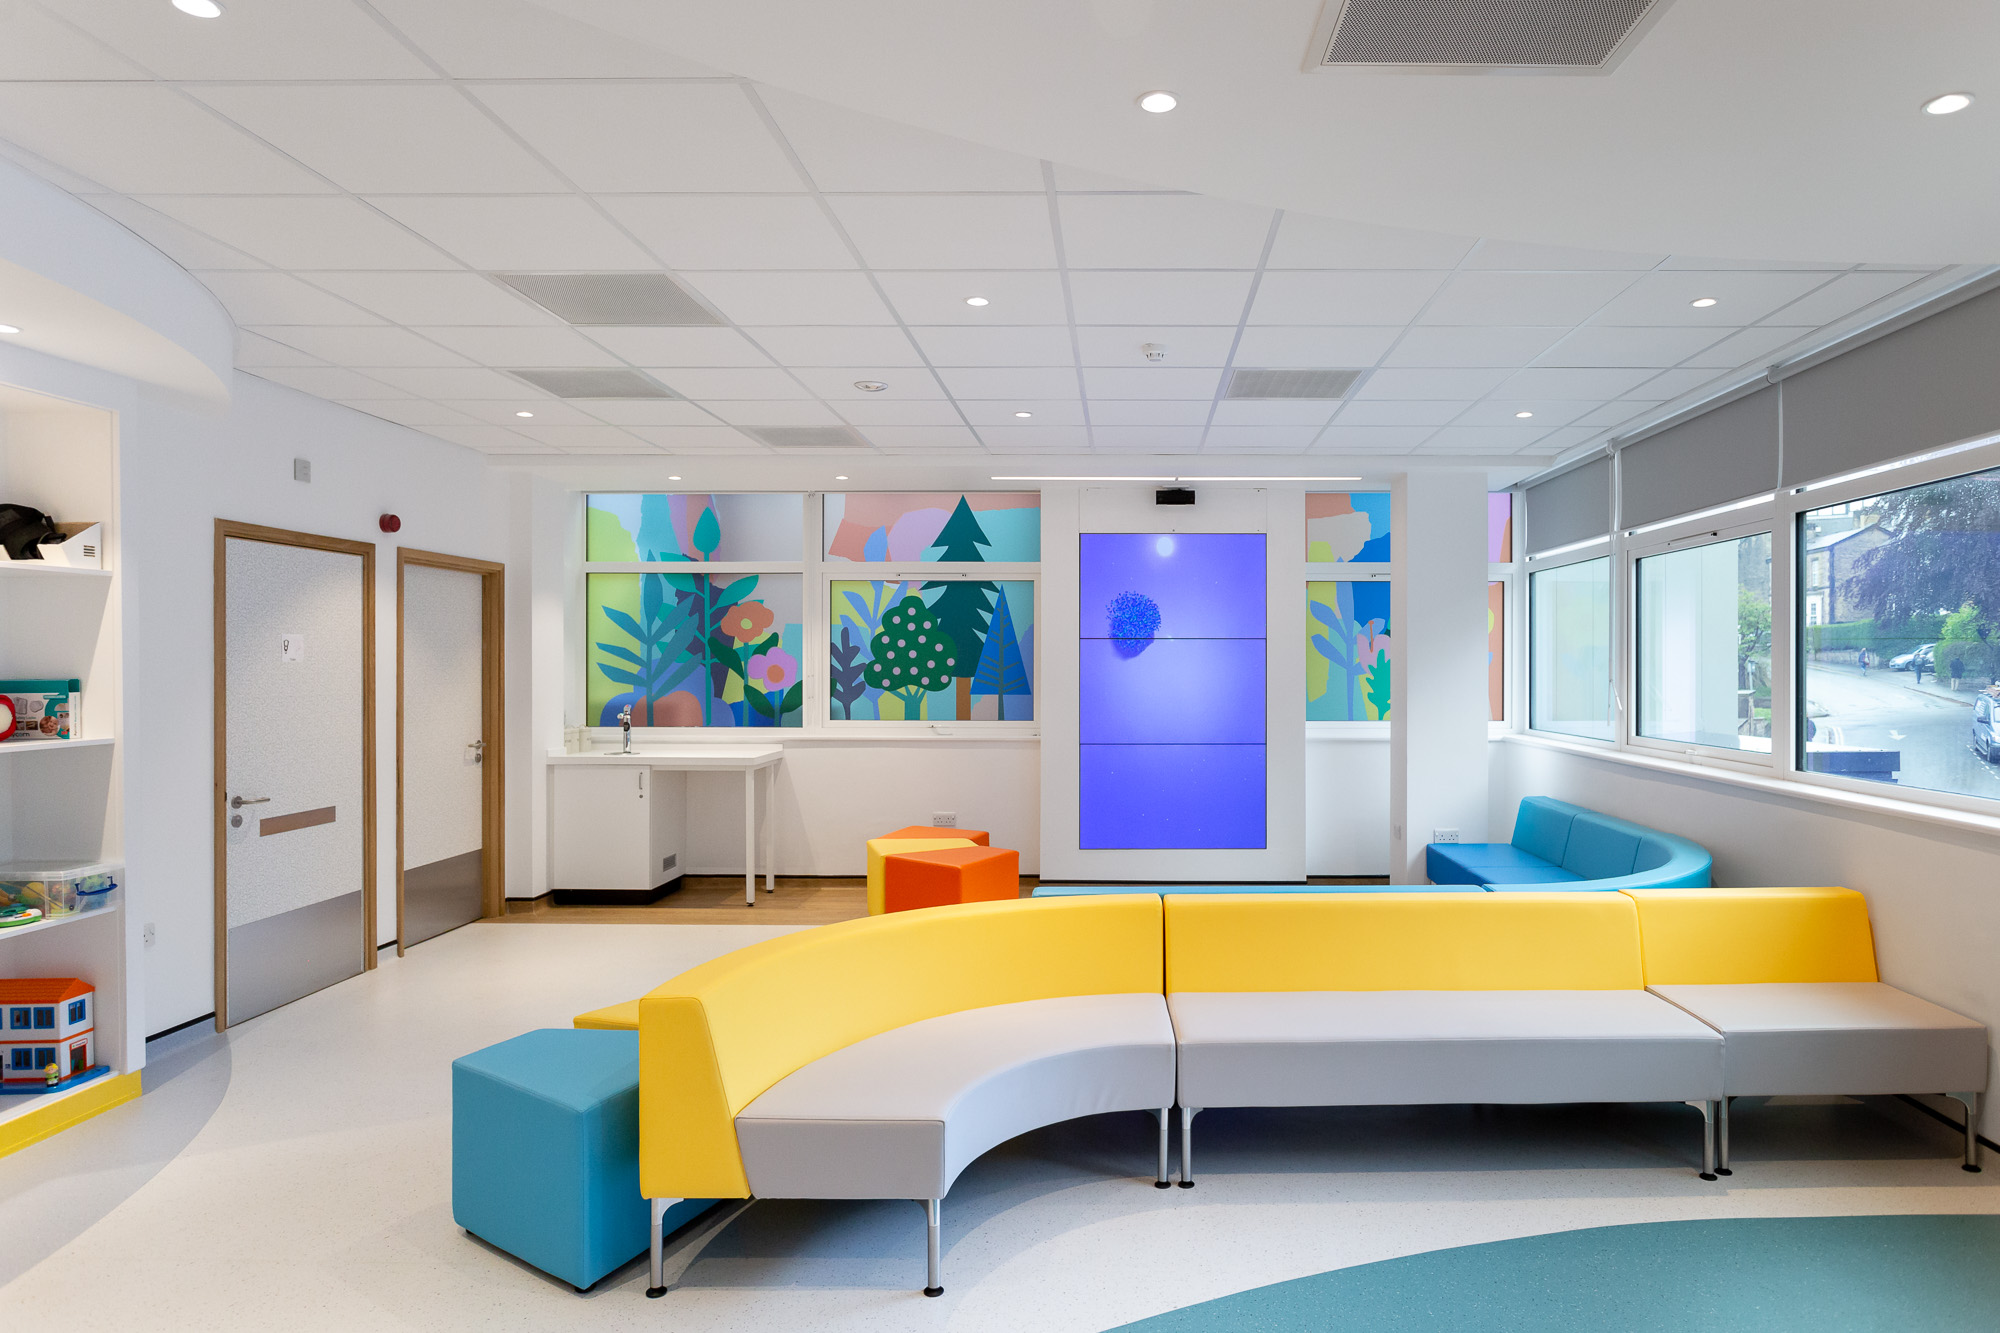 Haematology and Oncology Unit – Leah Bartholomew for Artfelt at Sheffield Children's Hospital. Photo Jules Lister